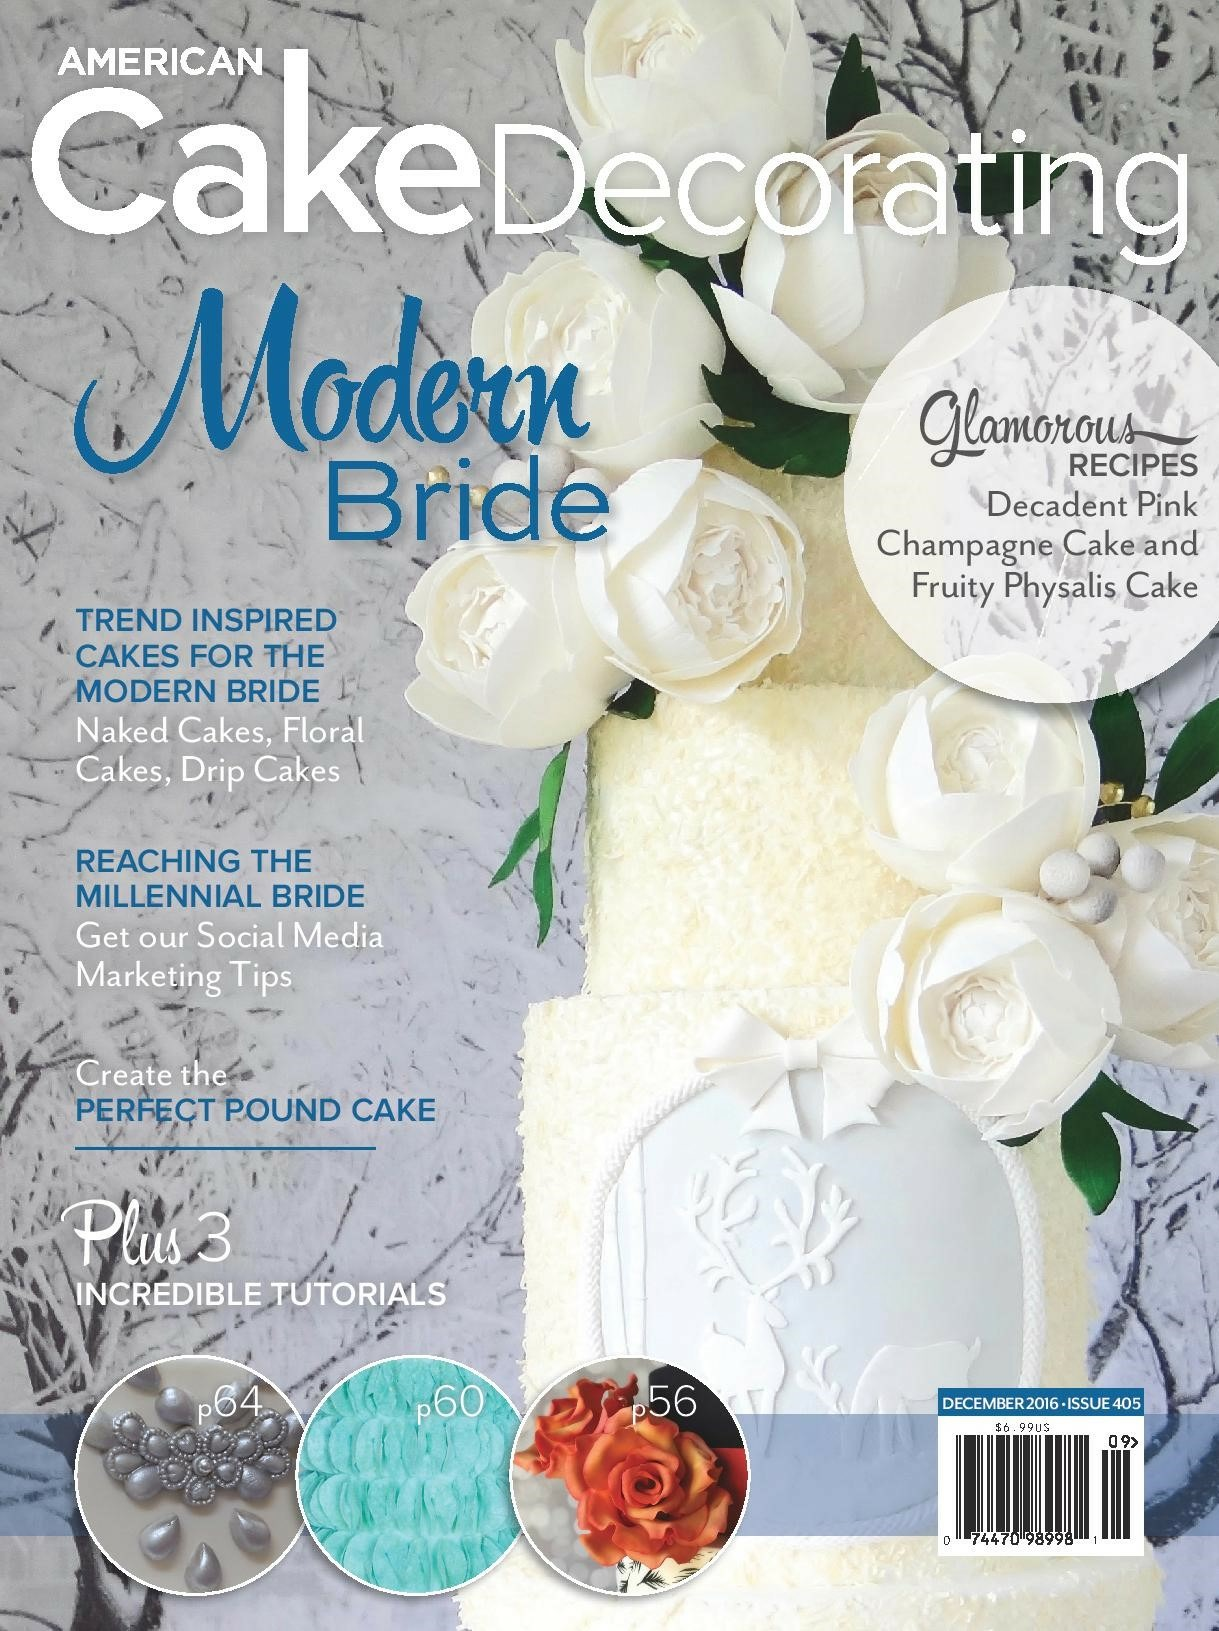 2016 American Cake Decorating Nov-Dec issue.JPG